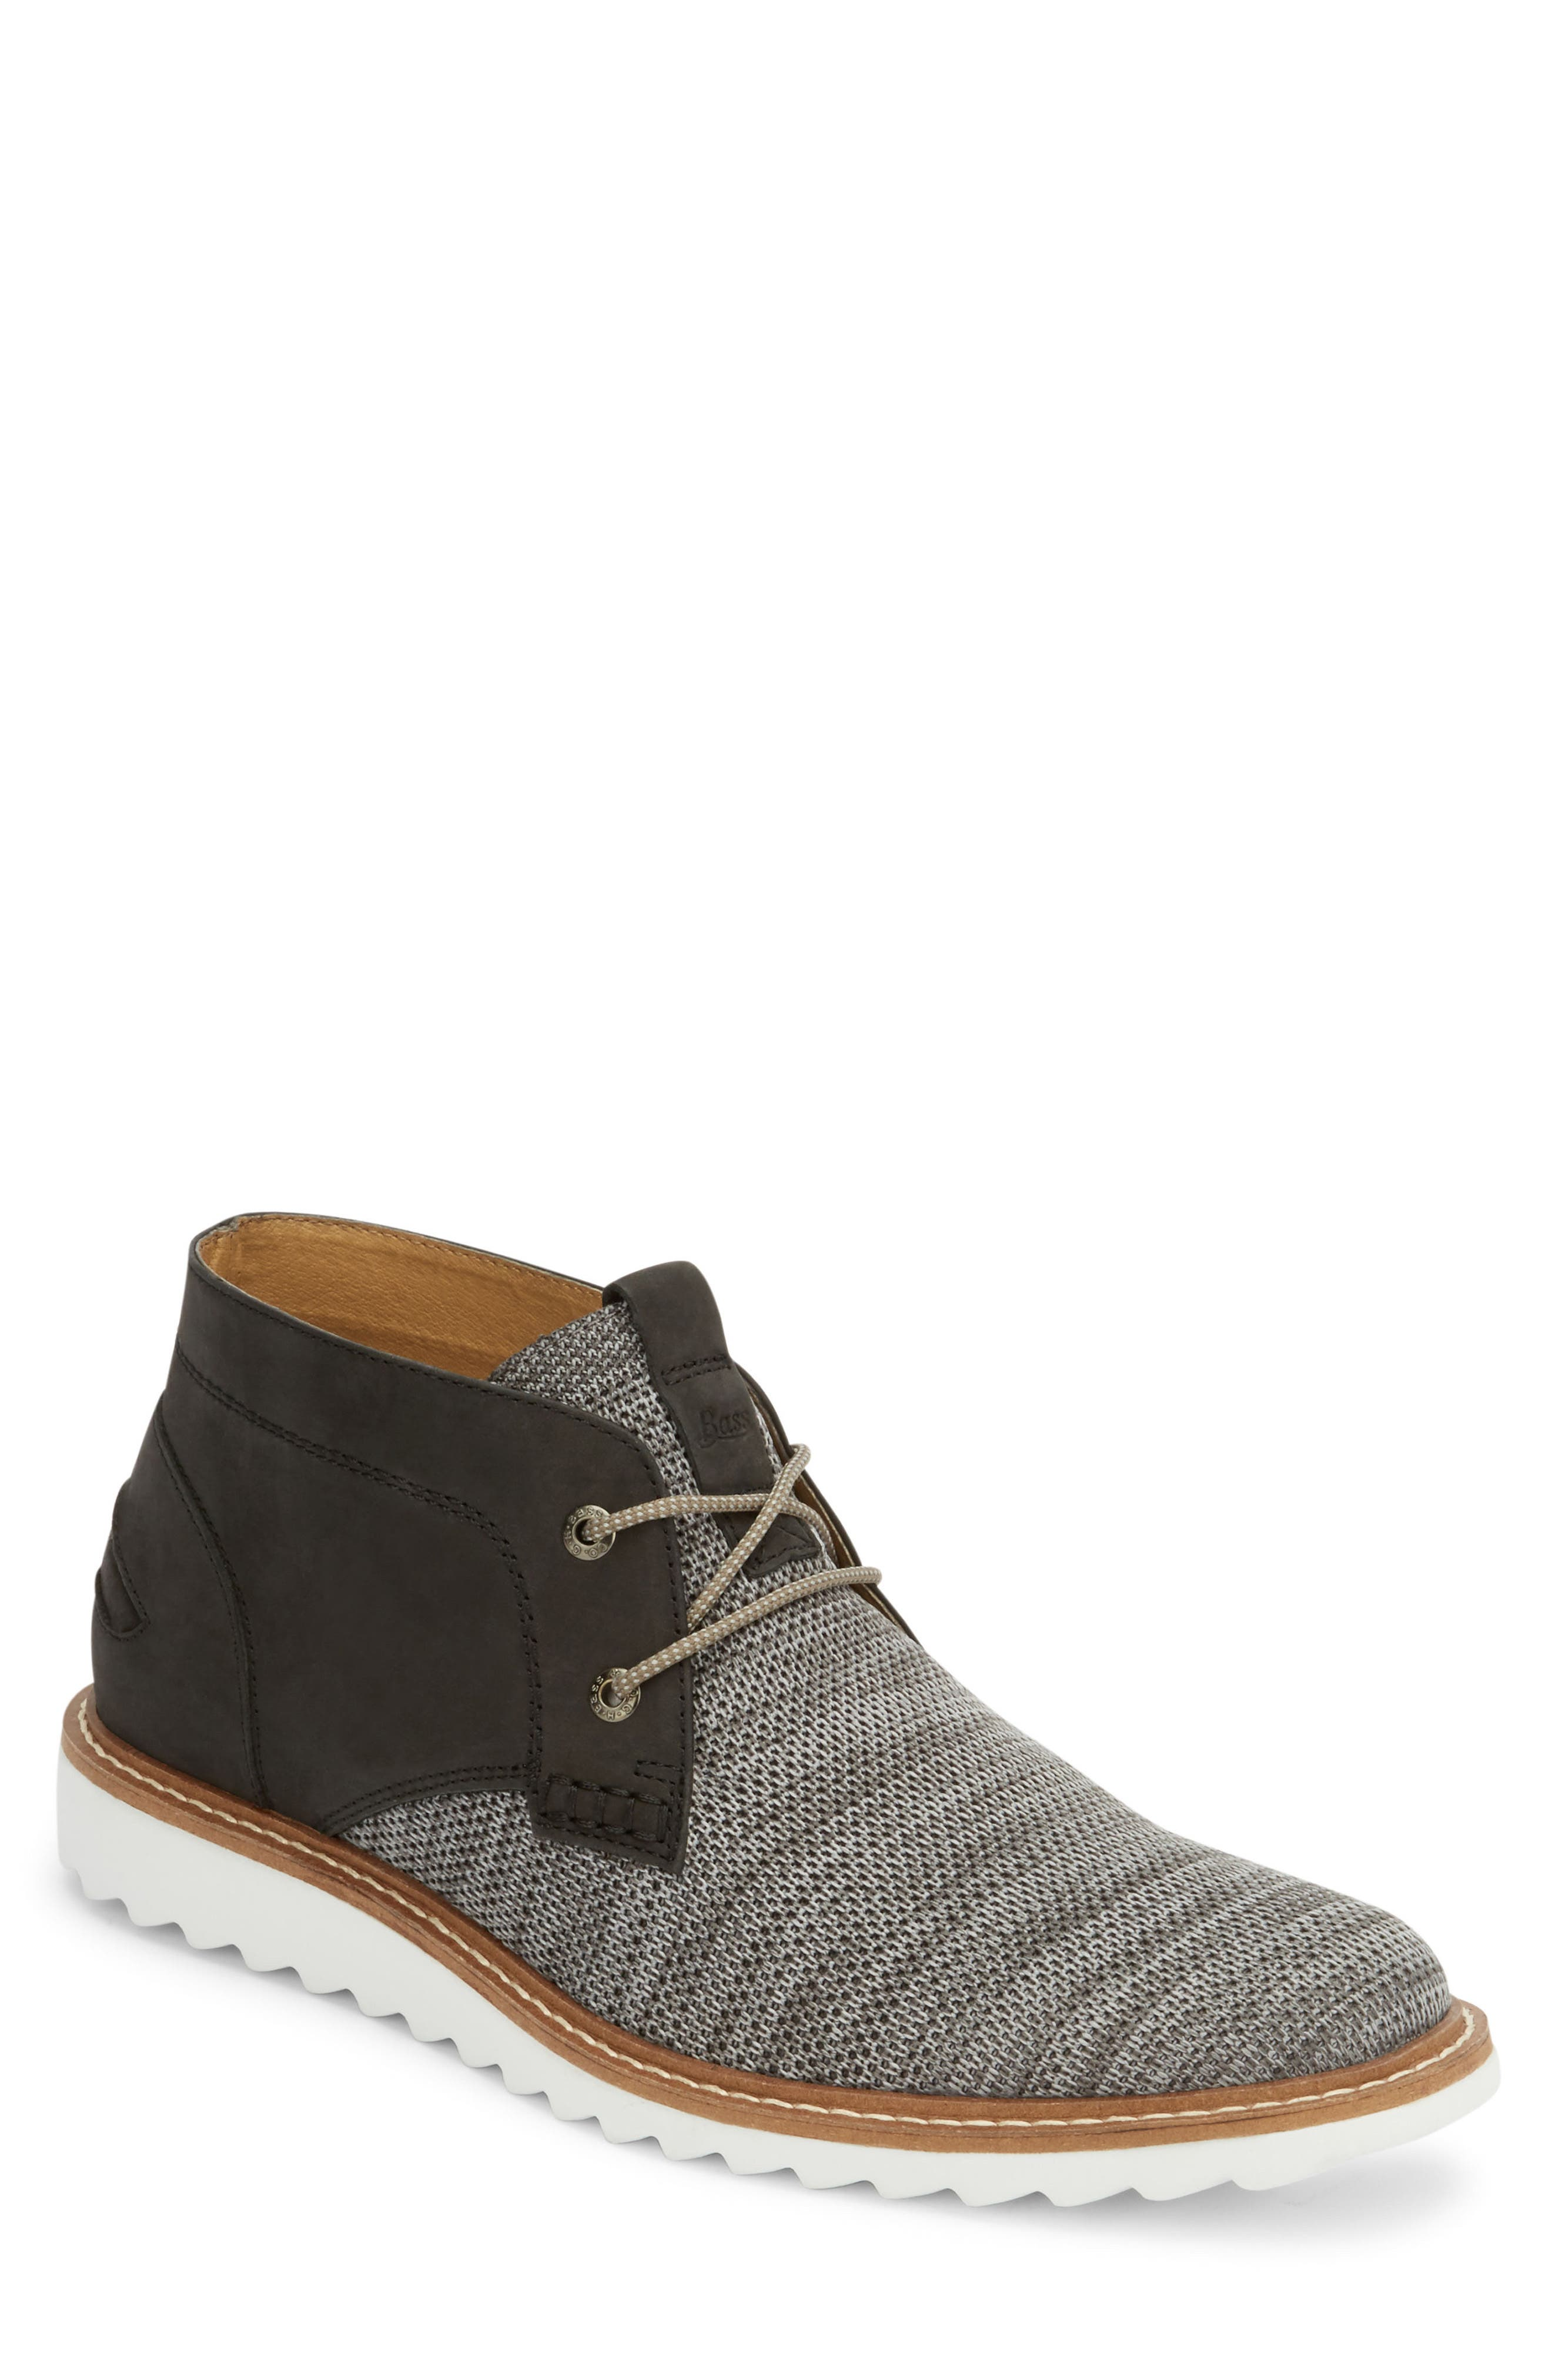 Buck 2.0 Chukka Boot,                             Main thumbnail 1, color,                             001